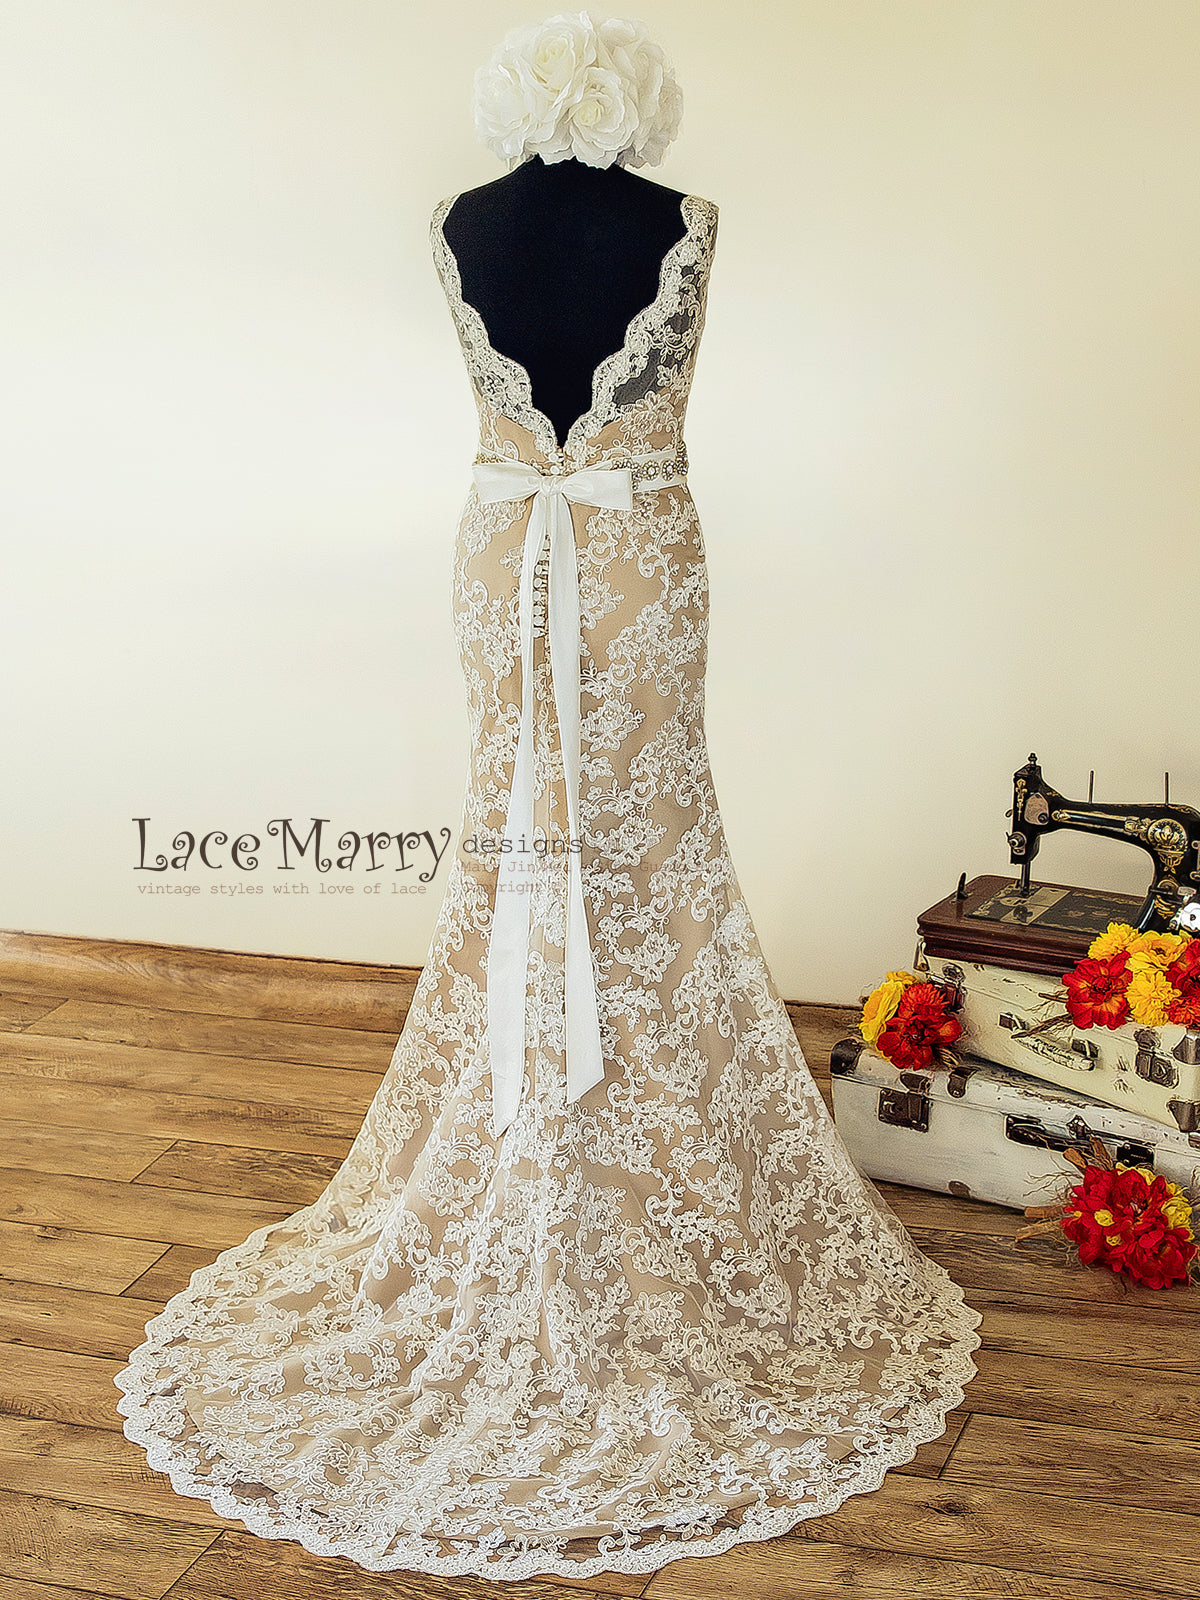 Vintage Inspired Wedding Dress from Ivory Lace and Champagne Satin with Illusion Neckline, Deep V Cut Open Back and Fitted Skirt with Train